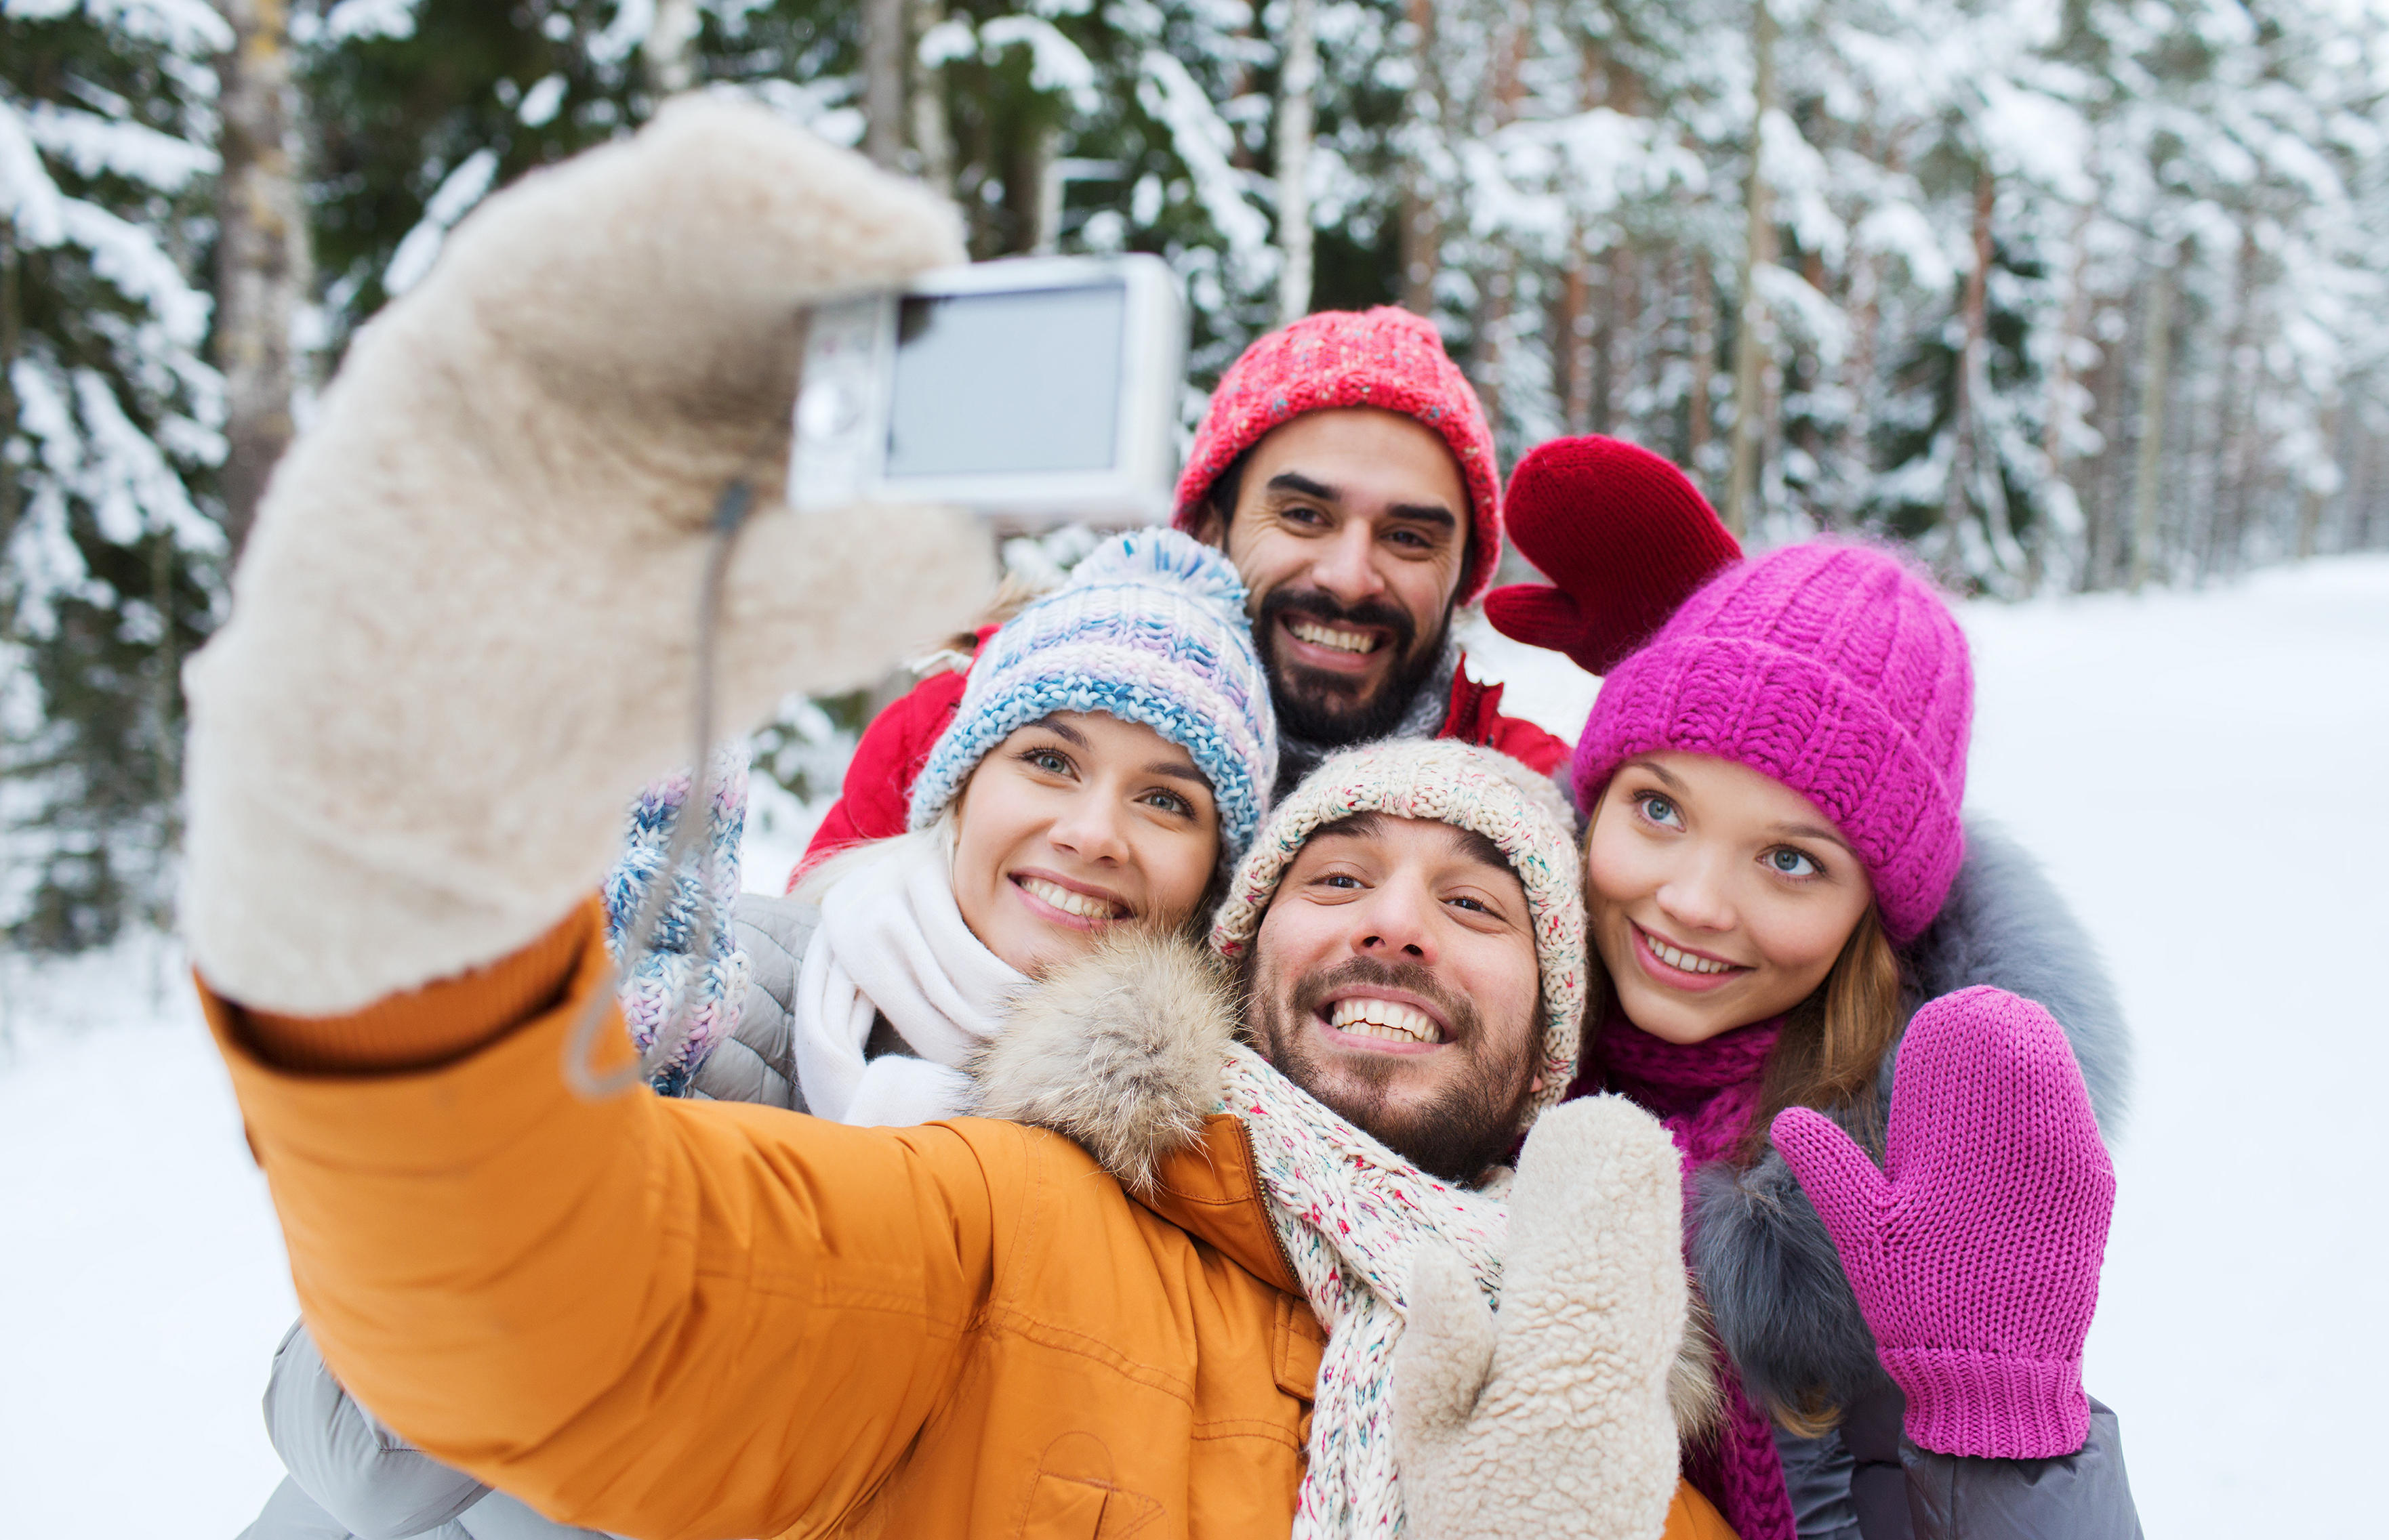 technology, season, friendship and people concept - group of smiling men and women taking selfie with digital camera in winter forest